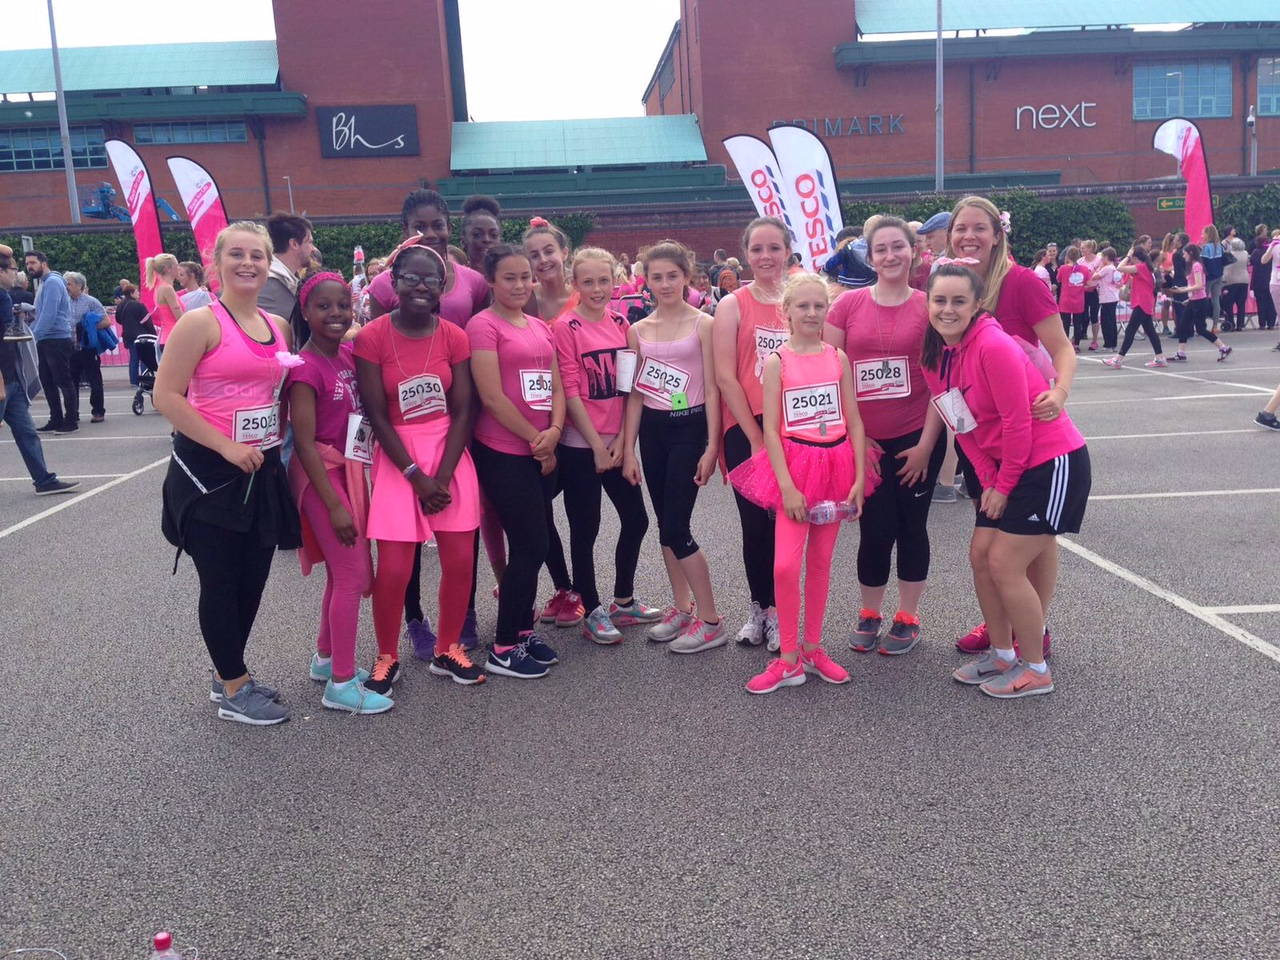 Arches Race 4 Life Project 2016